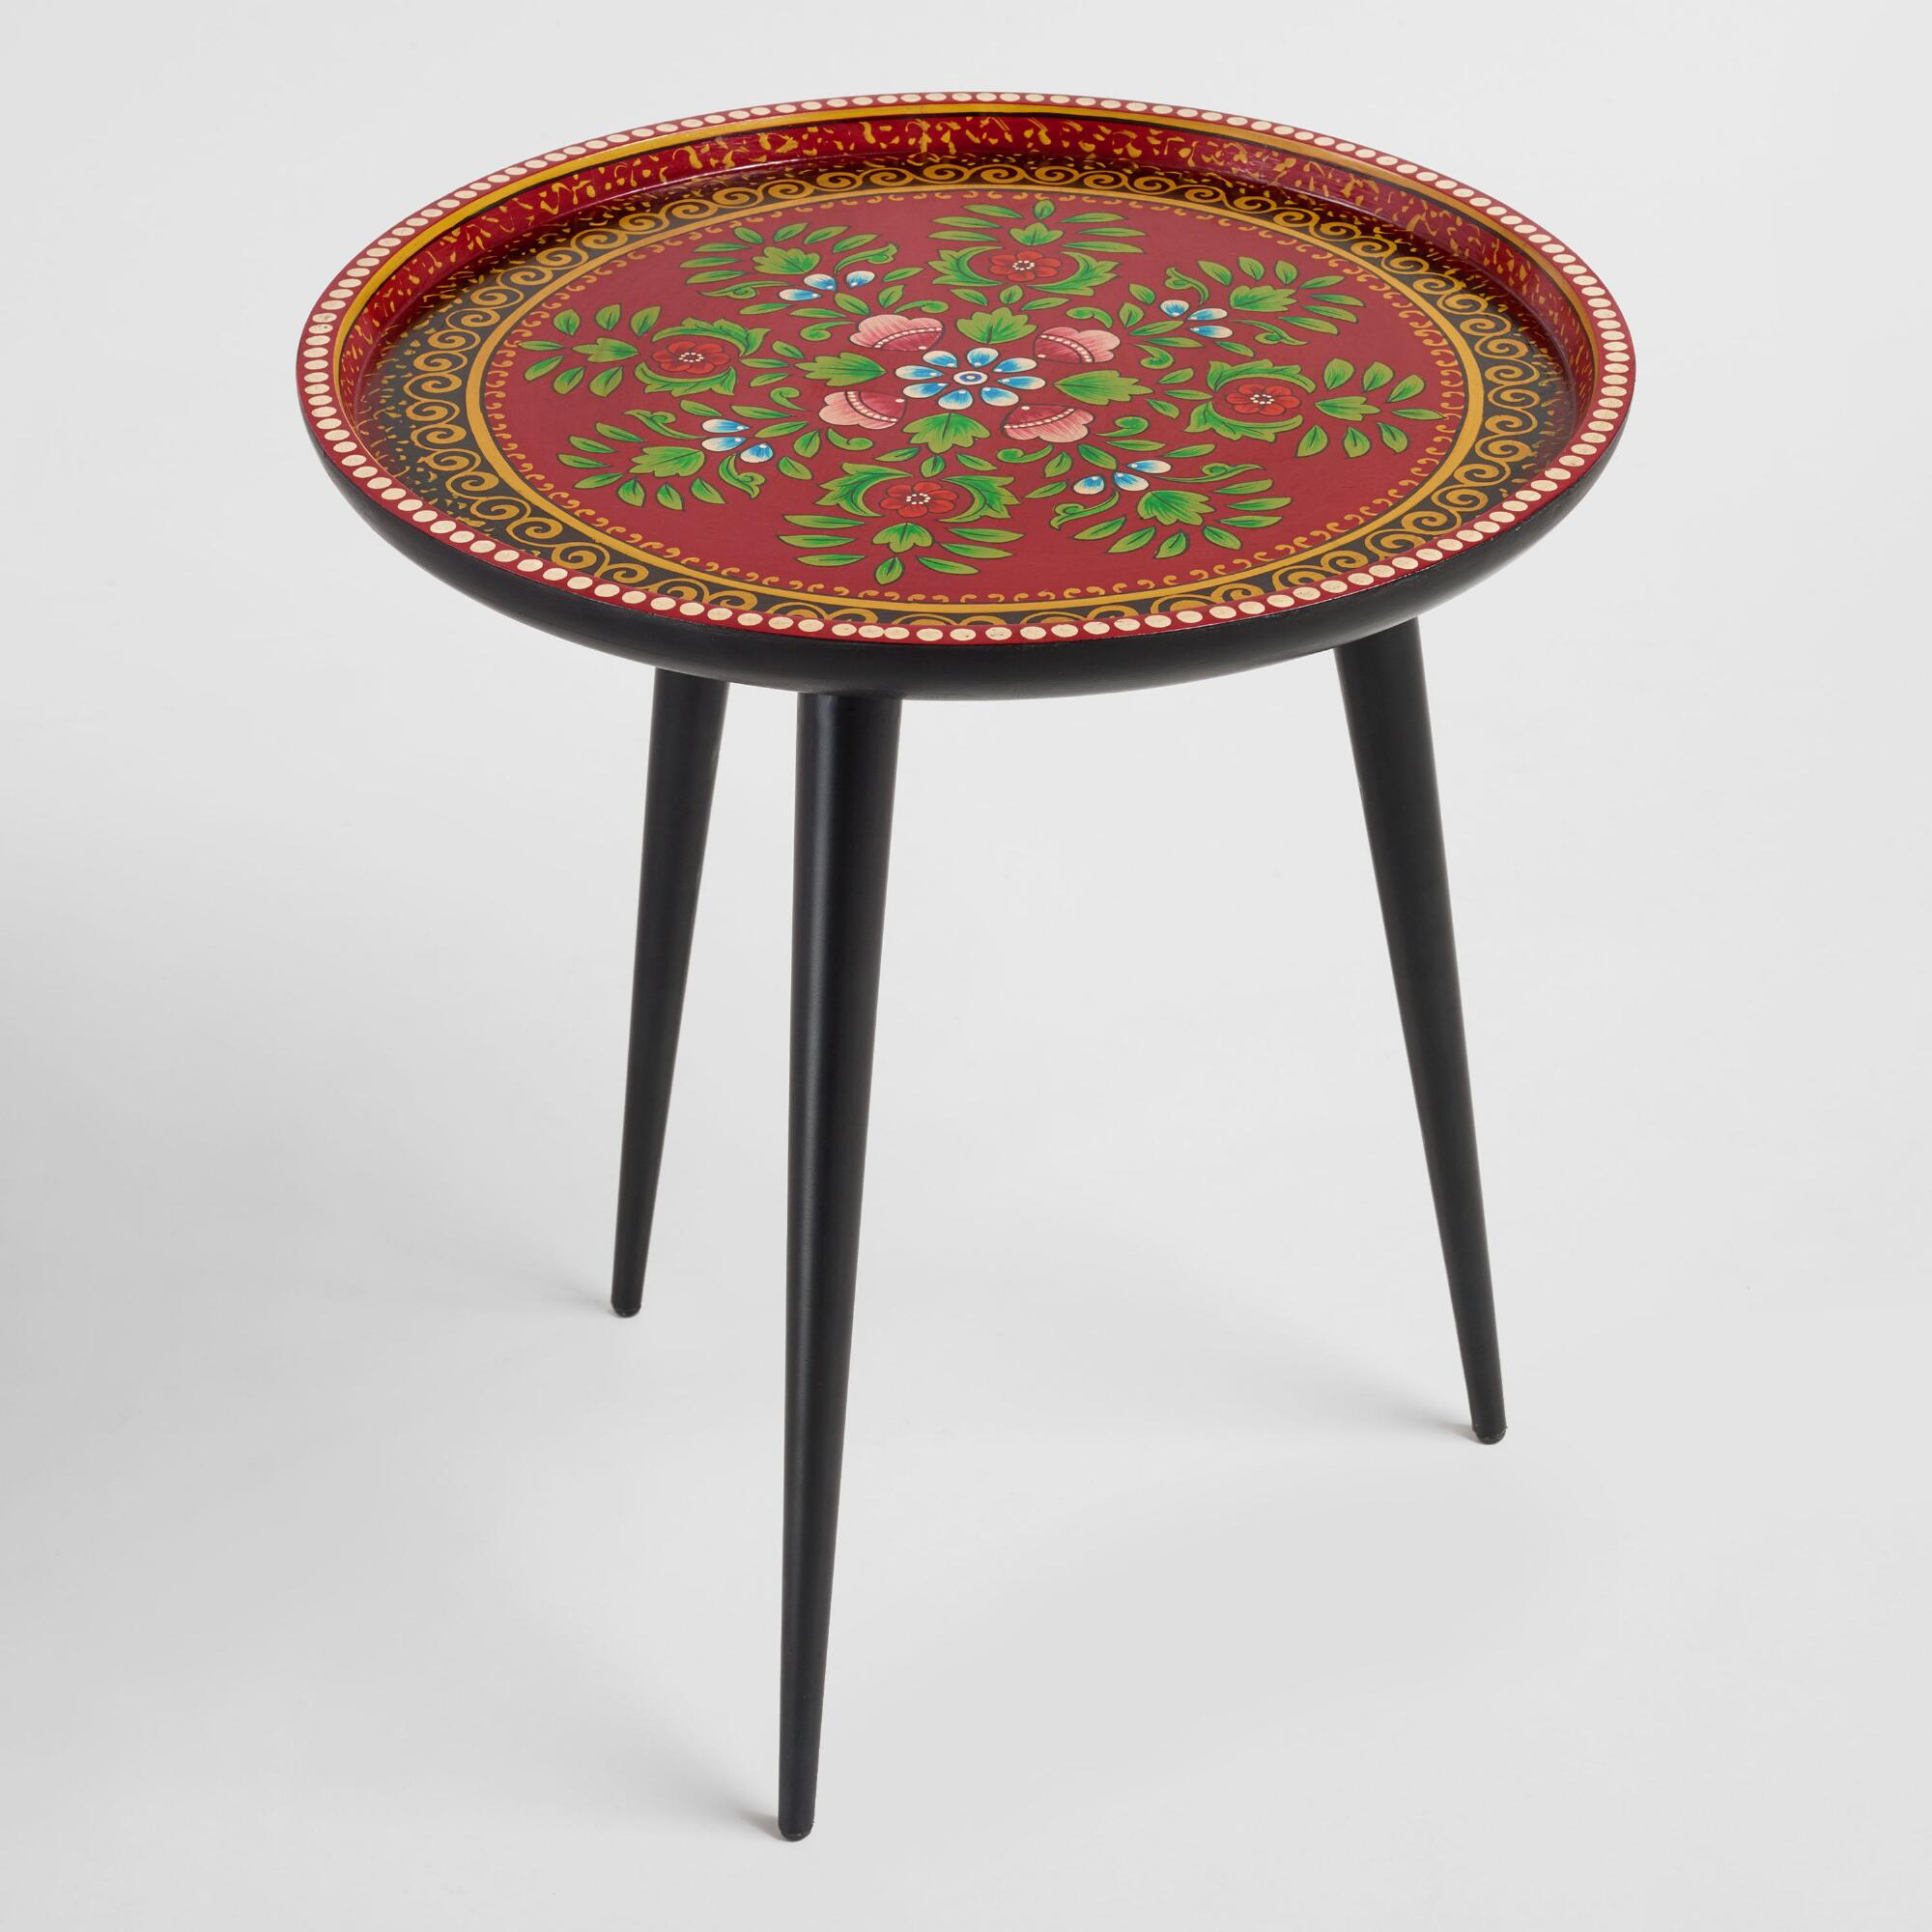 round red hand painted floral accent table world market iipsrv fcgi folding target mini lanterns modern nic gray farmhouse west elm lamp shades threshold side metal patio